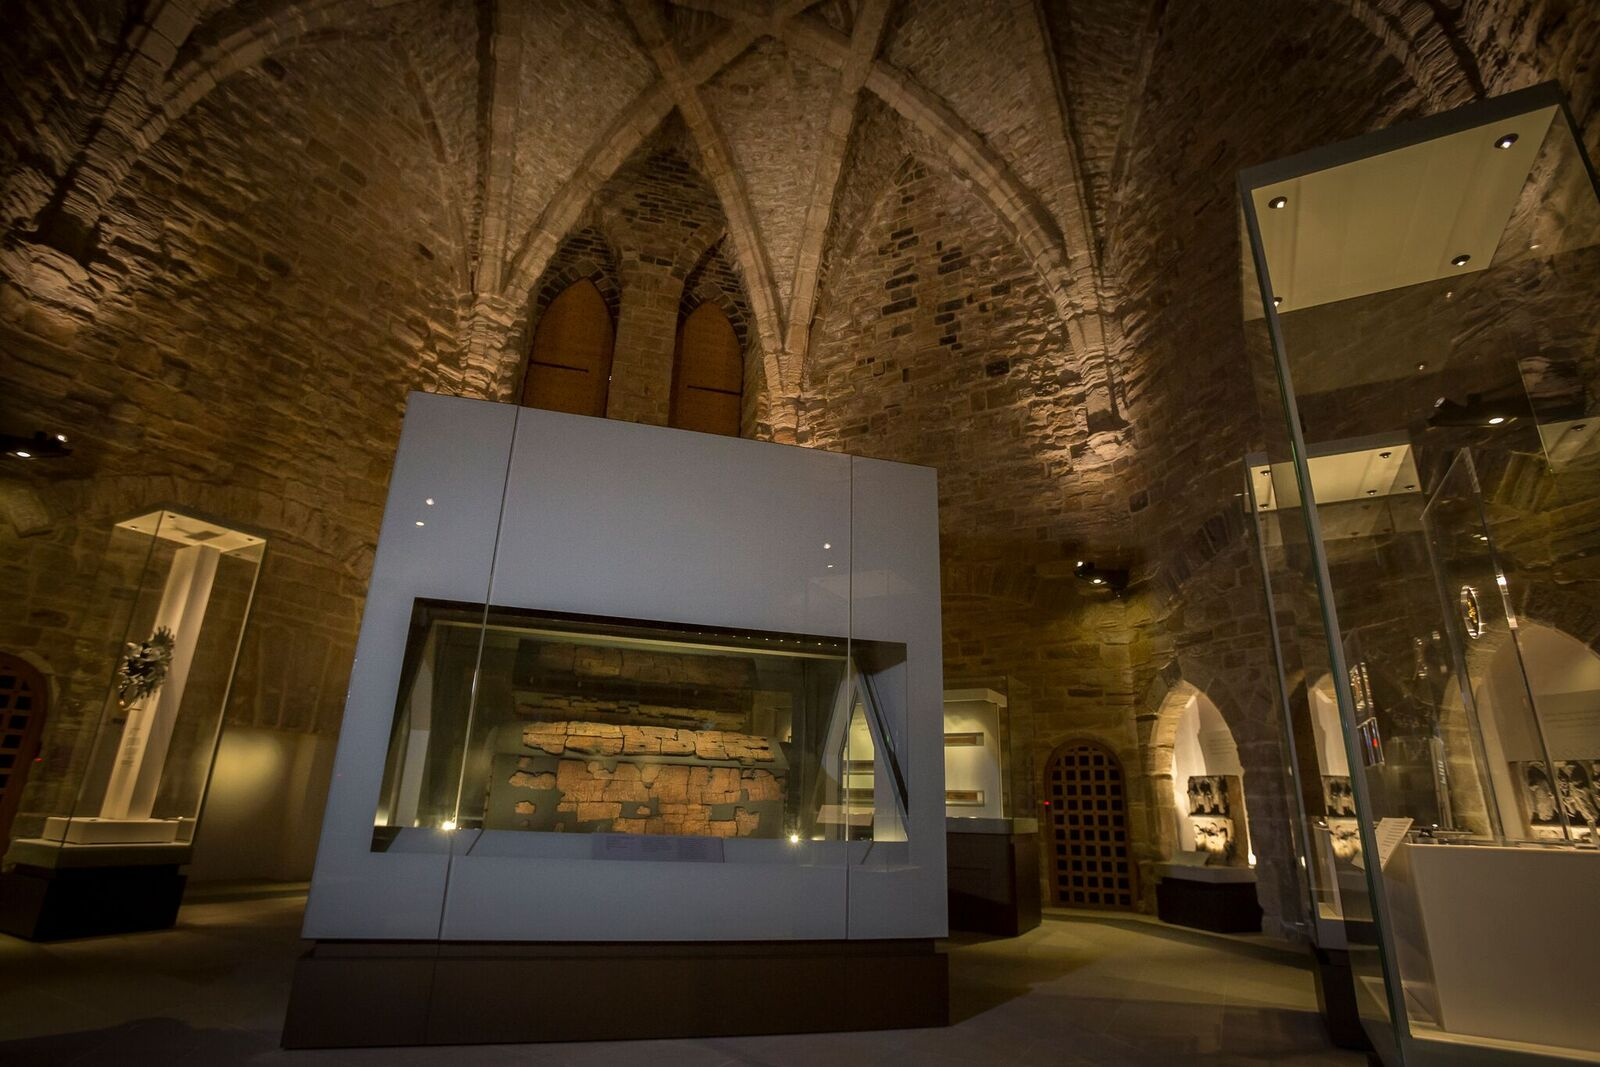 The coffin of St Cuthbert forms the centrepiece of the permanent exhibition in the cathedral's great kitchen